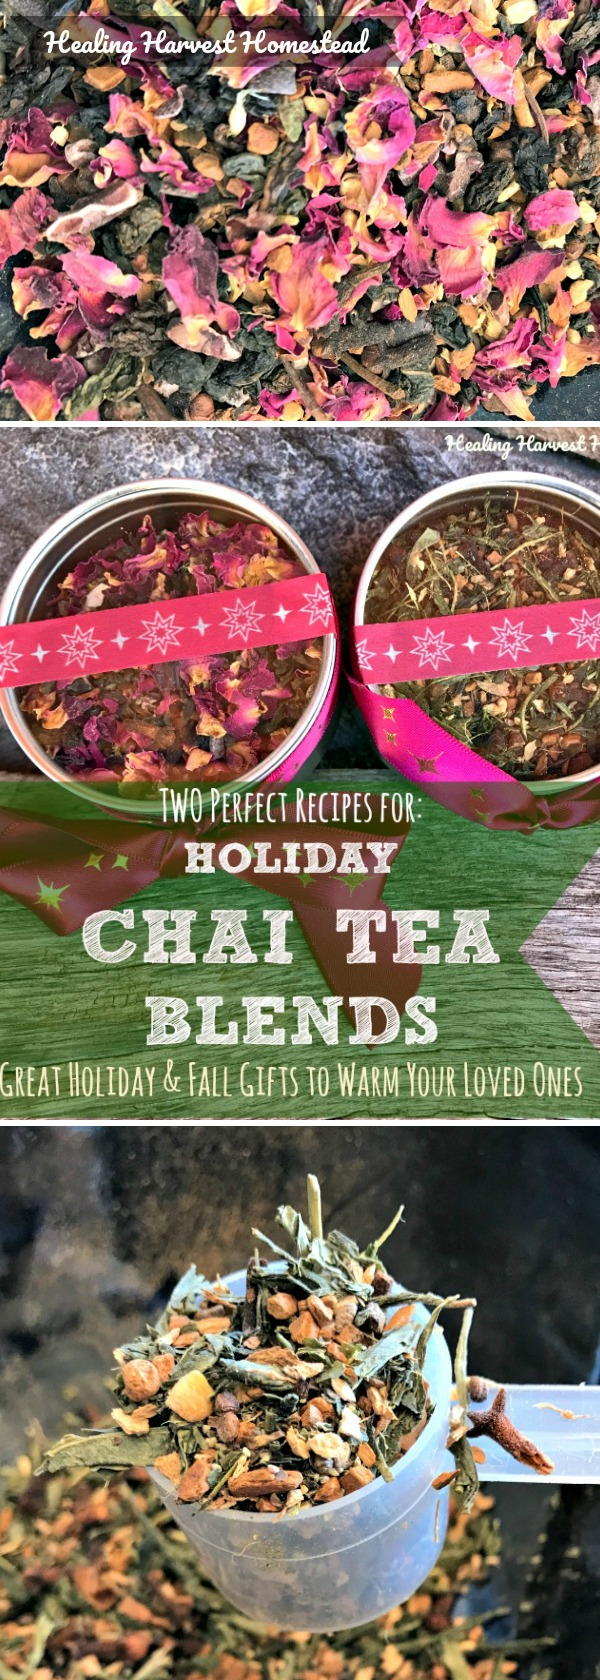 Photo of Herbal Chai Teas: Two Perfect Blends for Fall Pleasure or for Gift Giving (Chai Tea Blends to Crave!) — Home Healing Harvest Homestead